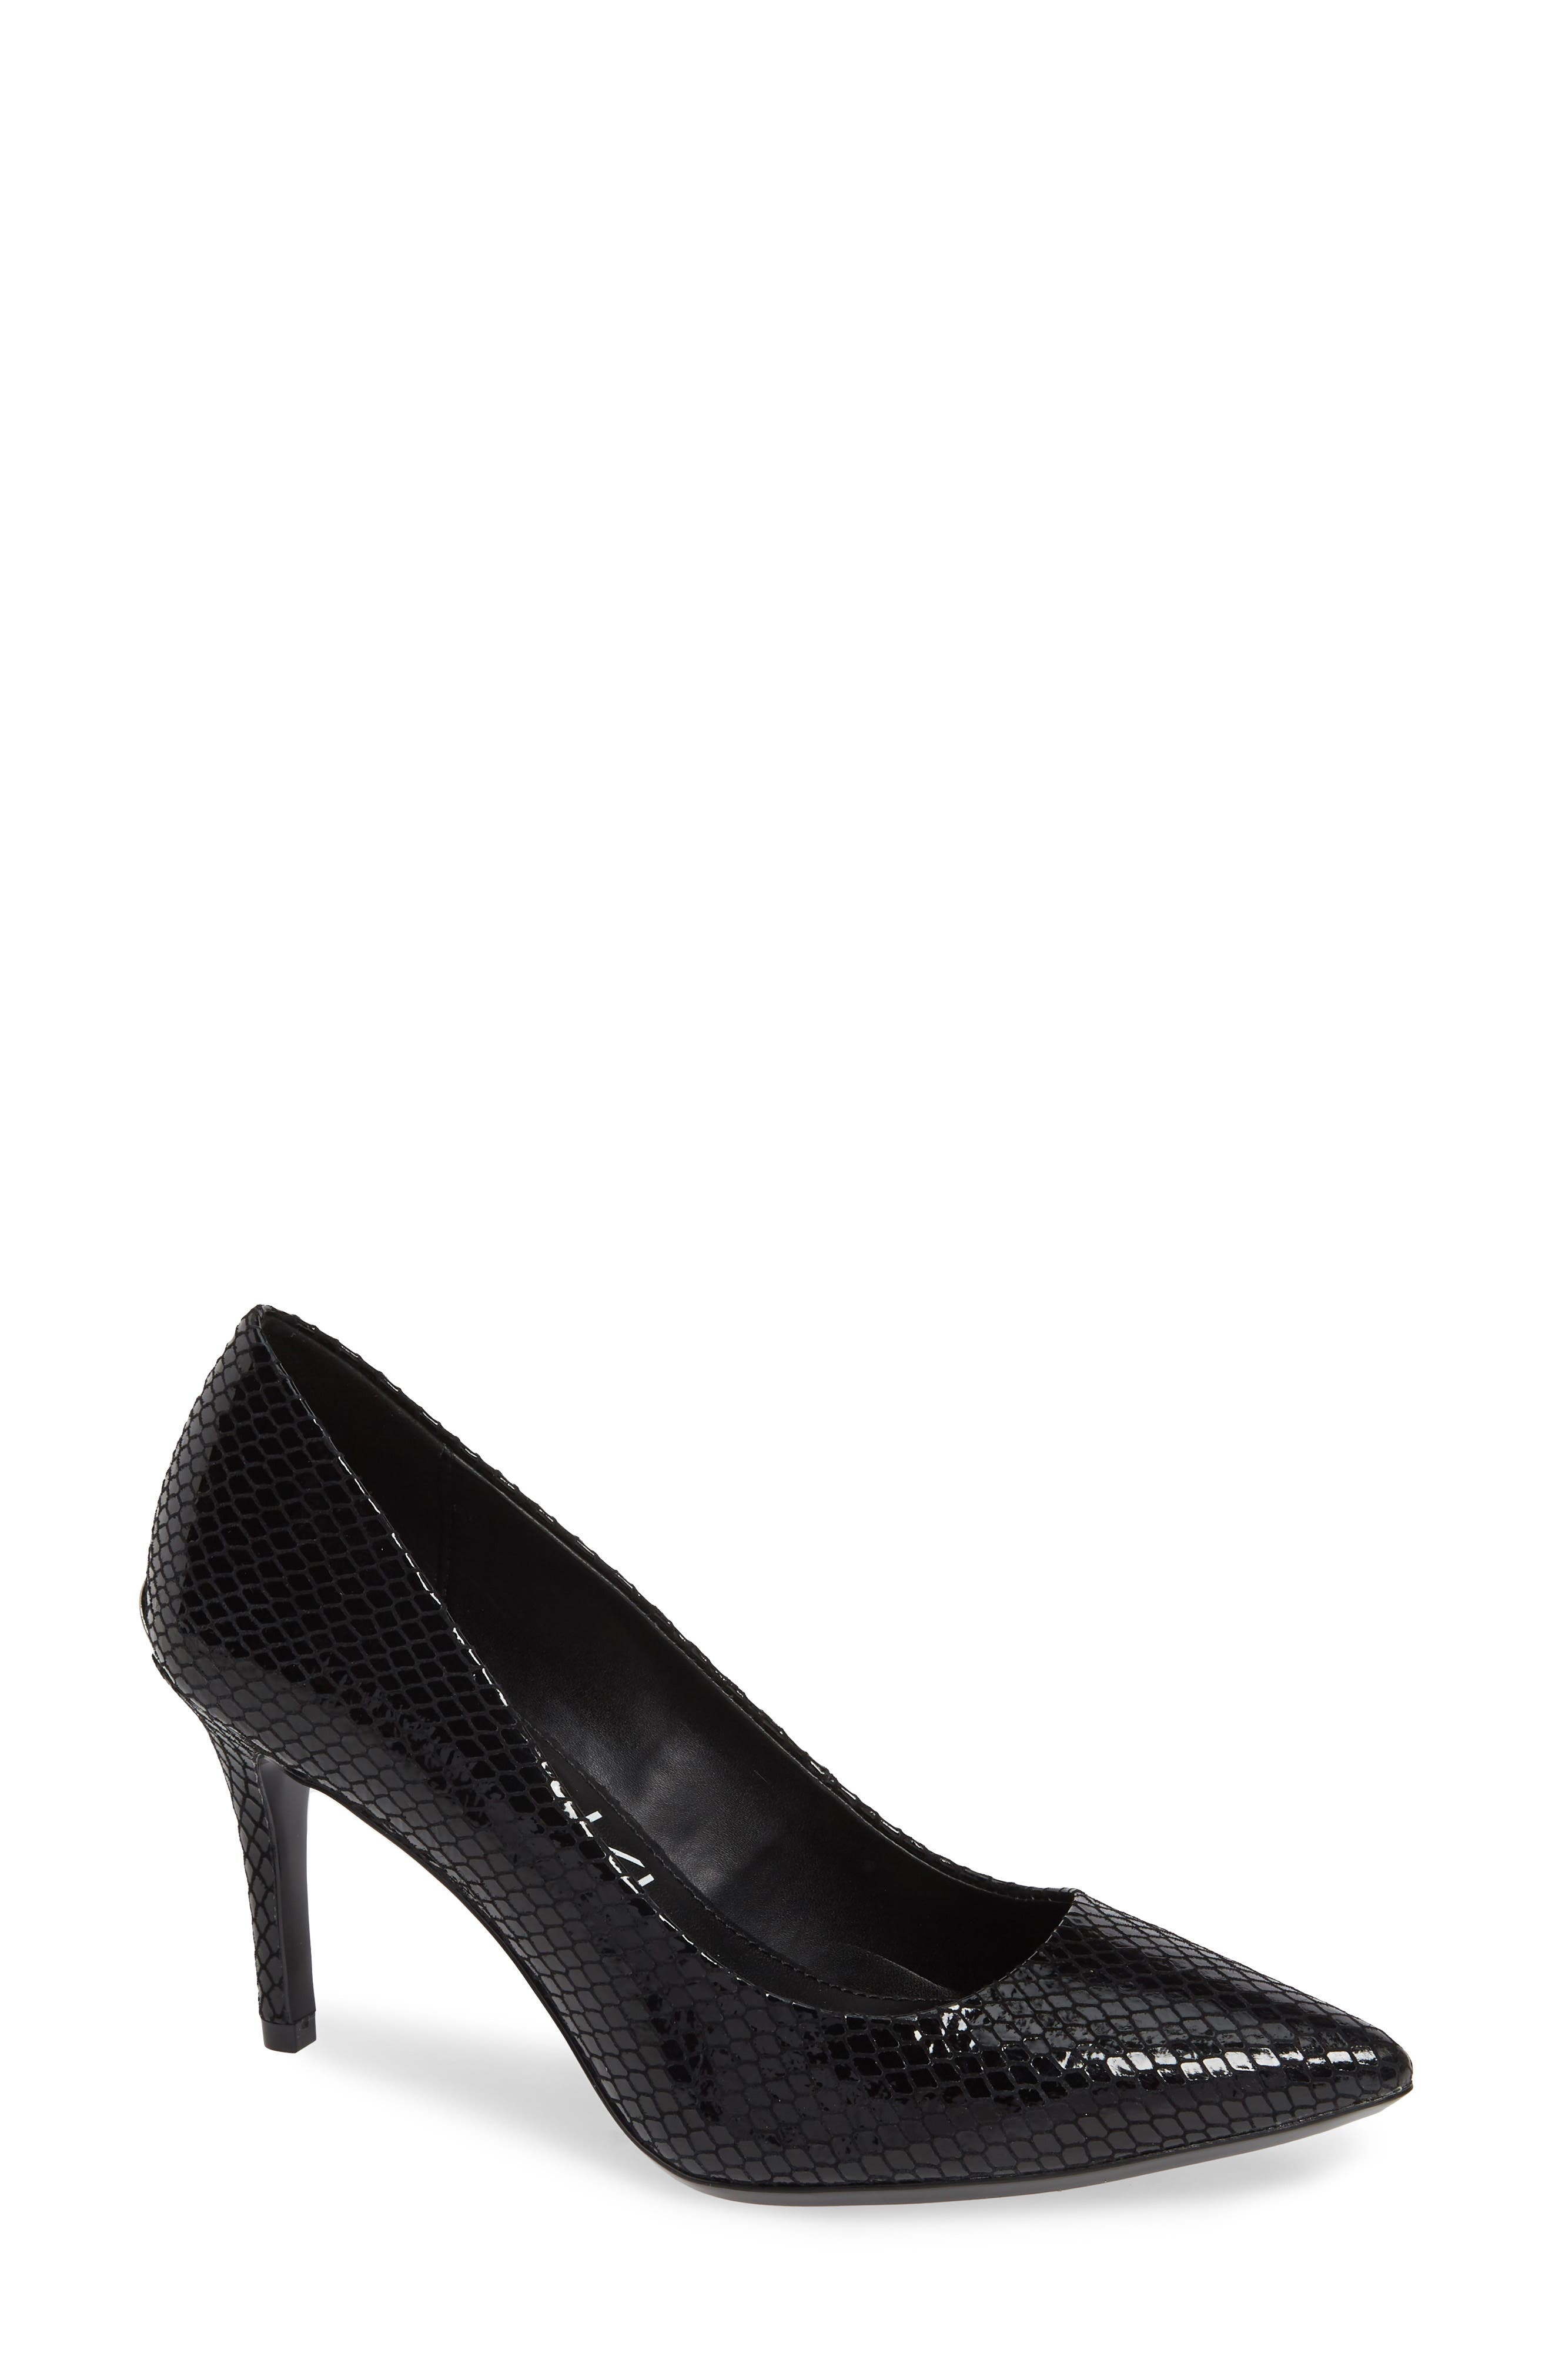 CALVIN KLEIN,                             'Gayle' Pointy Toe Pump,                             Main thumbnail 1, color,                             BLACK SNAKE PRINT LEATHER